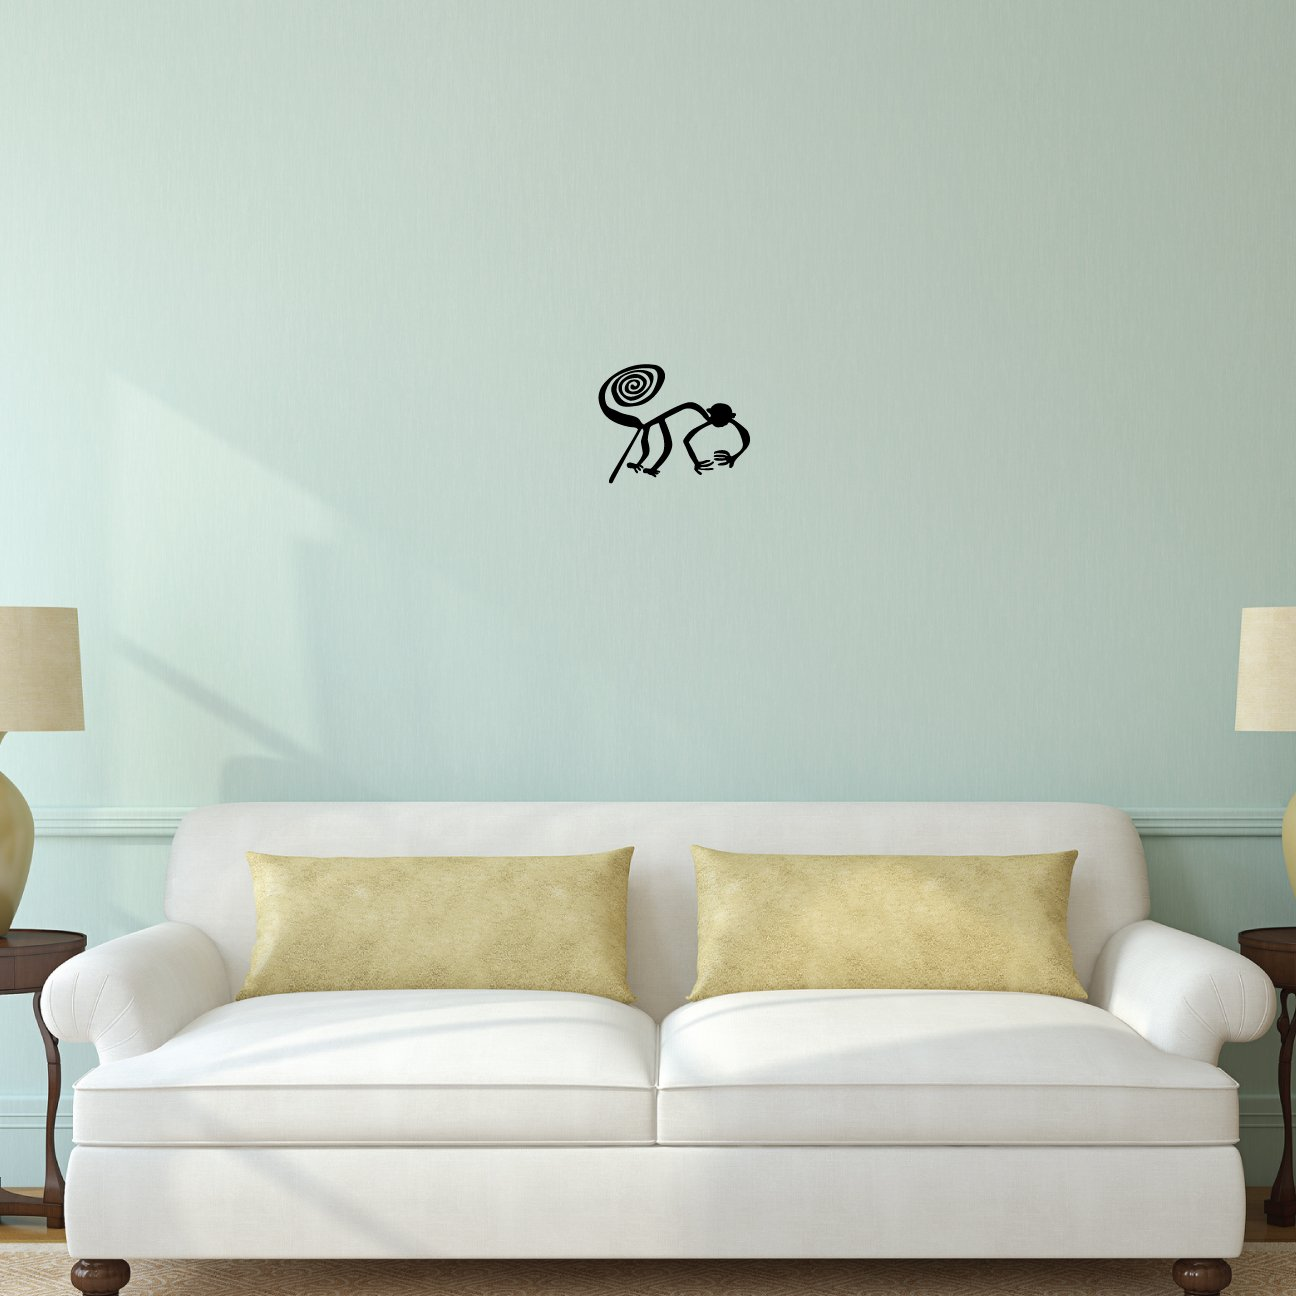 Amazon Nazca Lines Monkey Wall Decal Sticker 1 Decal Stickers